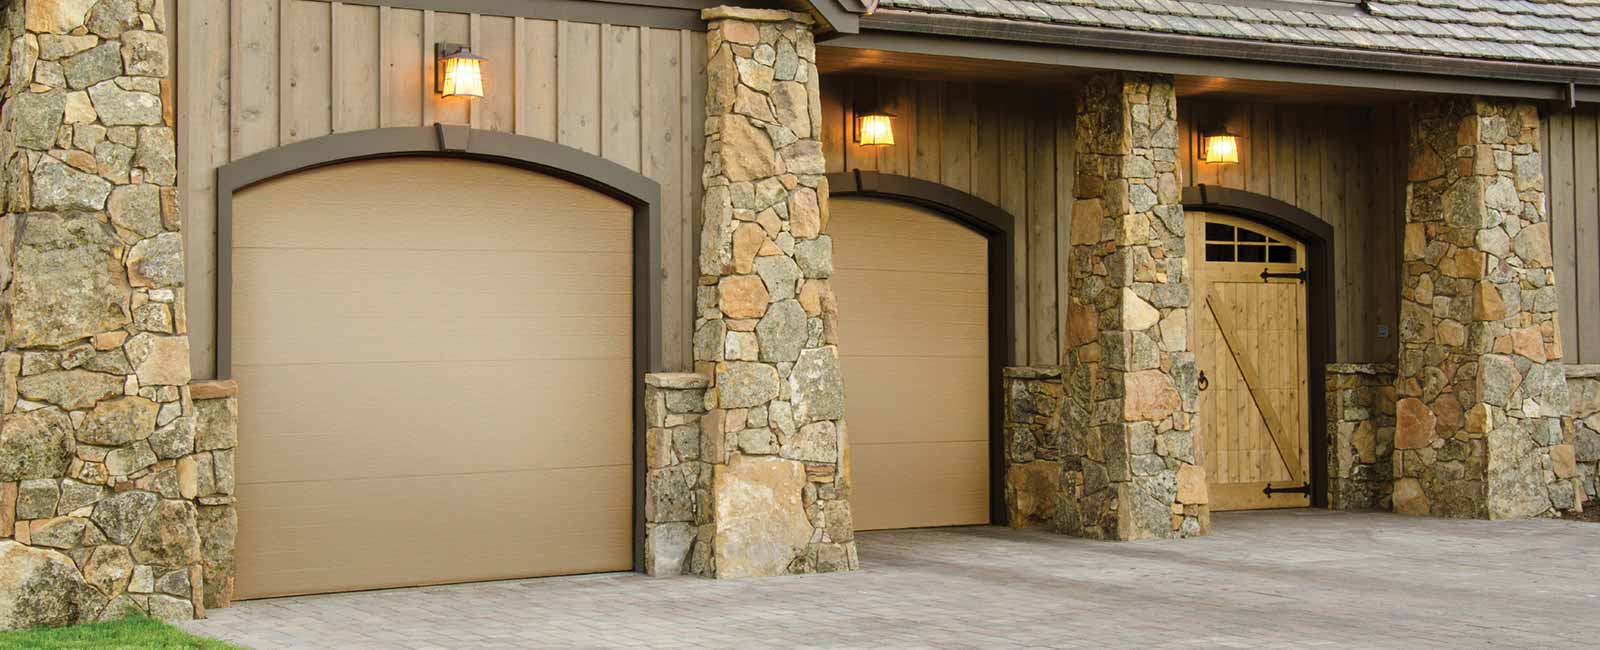 three single-car flush panel garage doors